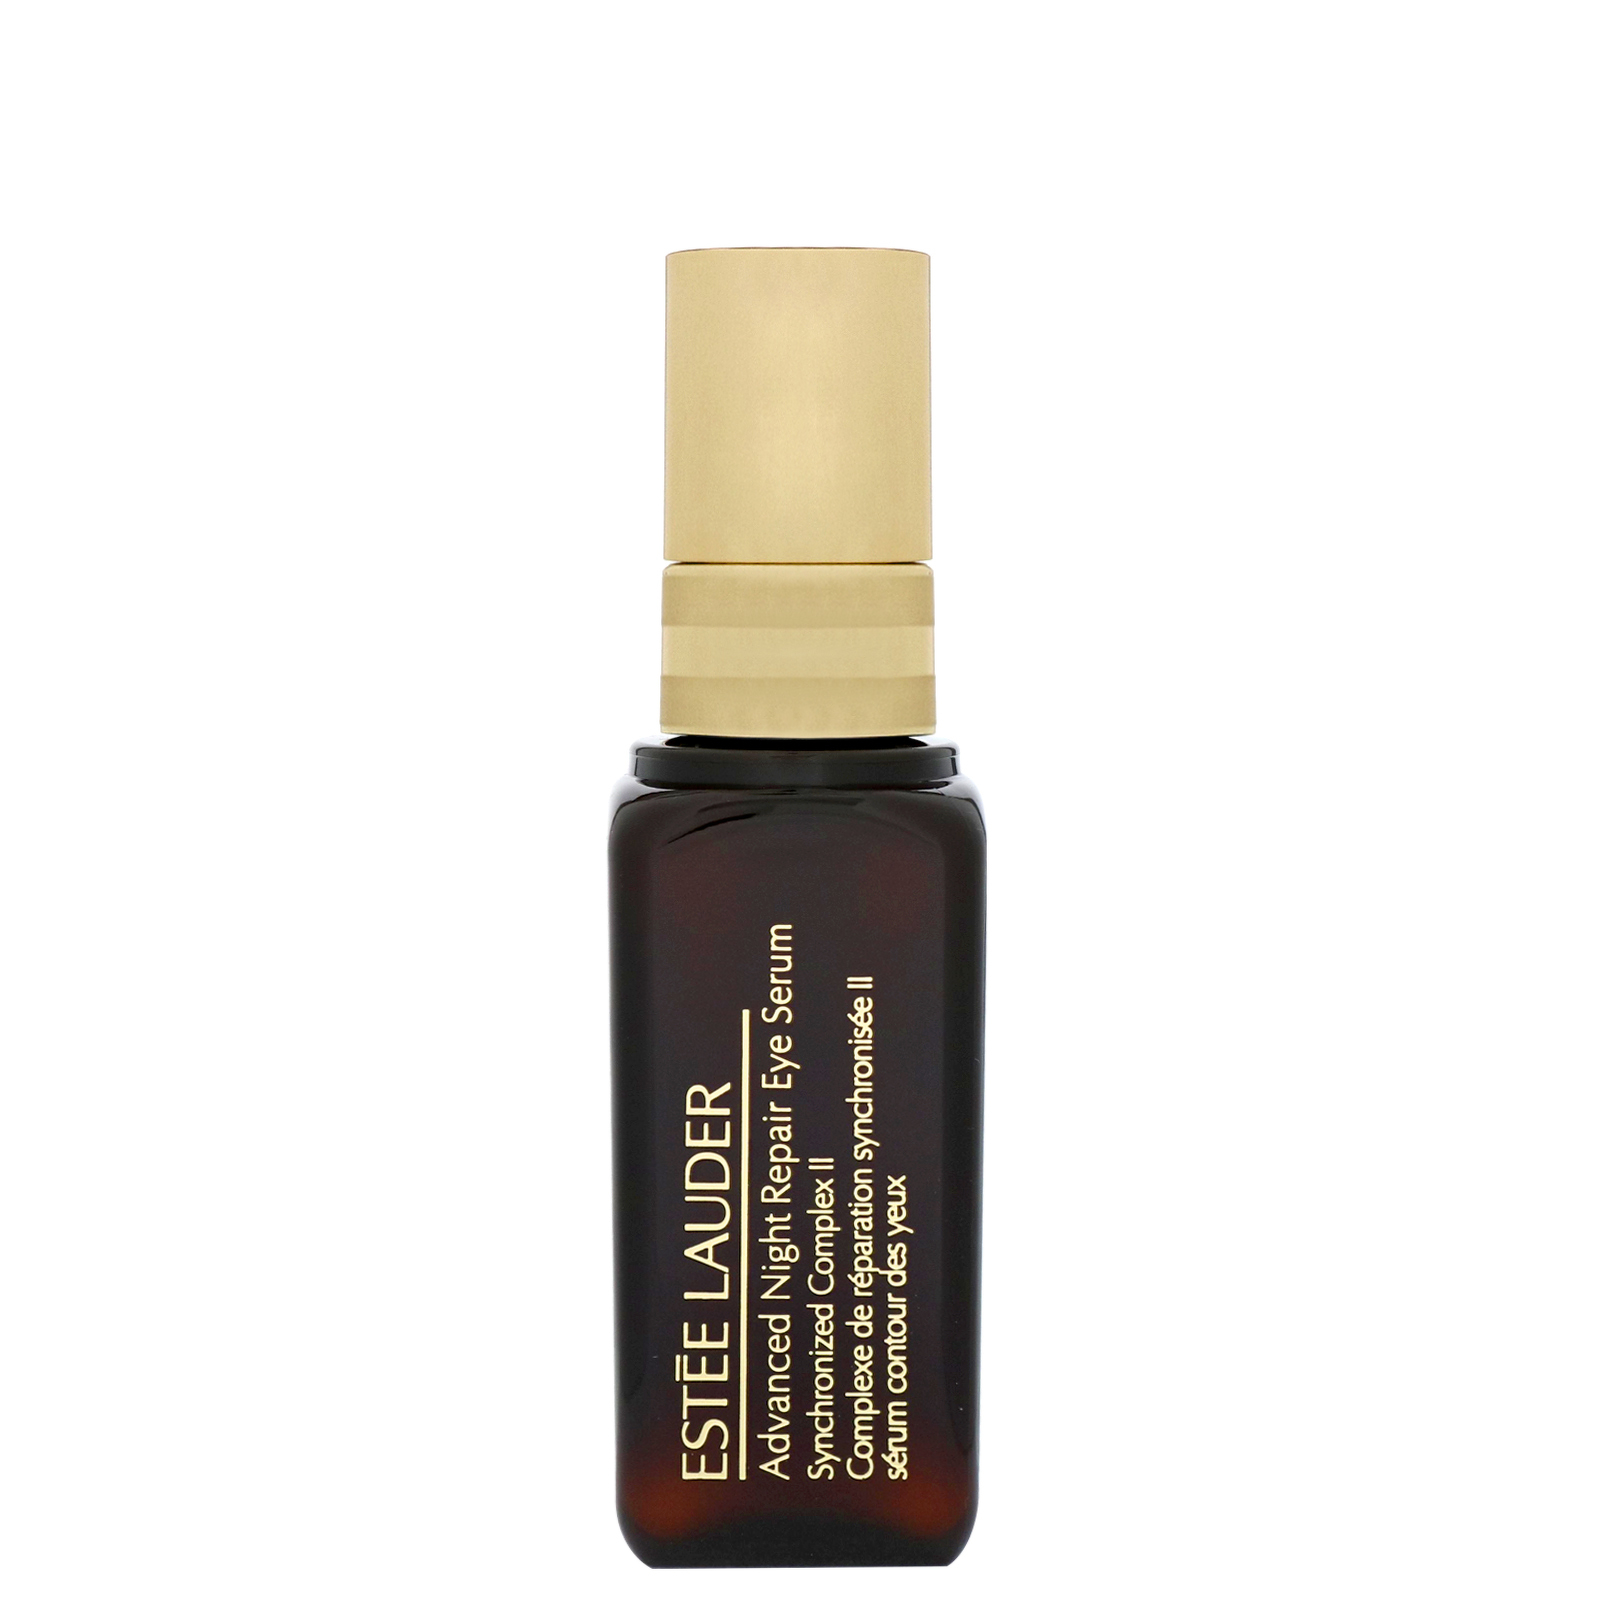 how to use estee lauder night repair serum